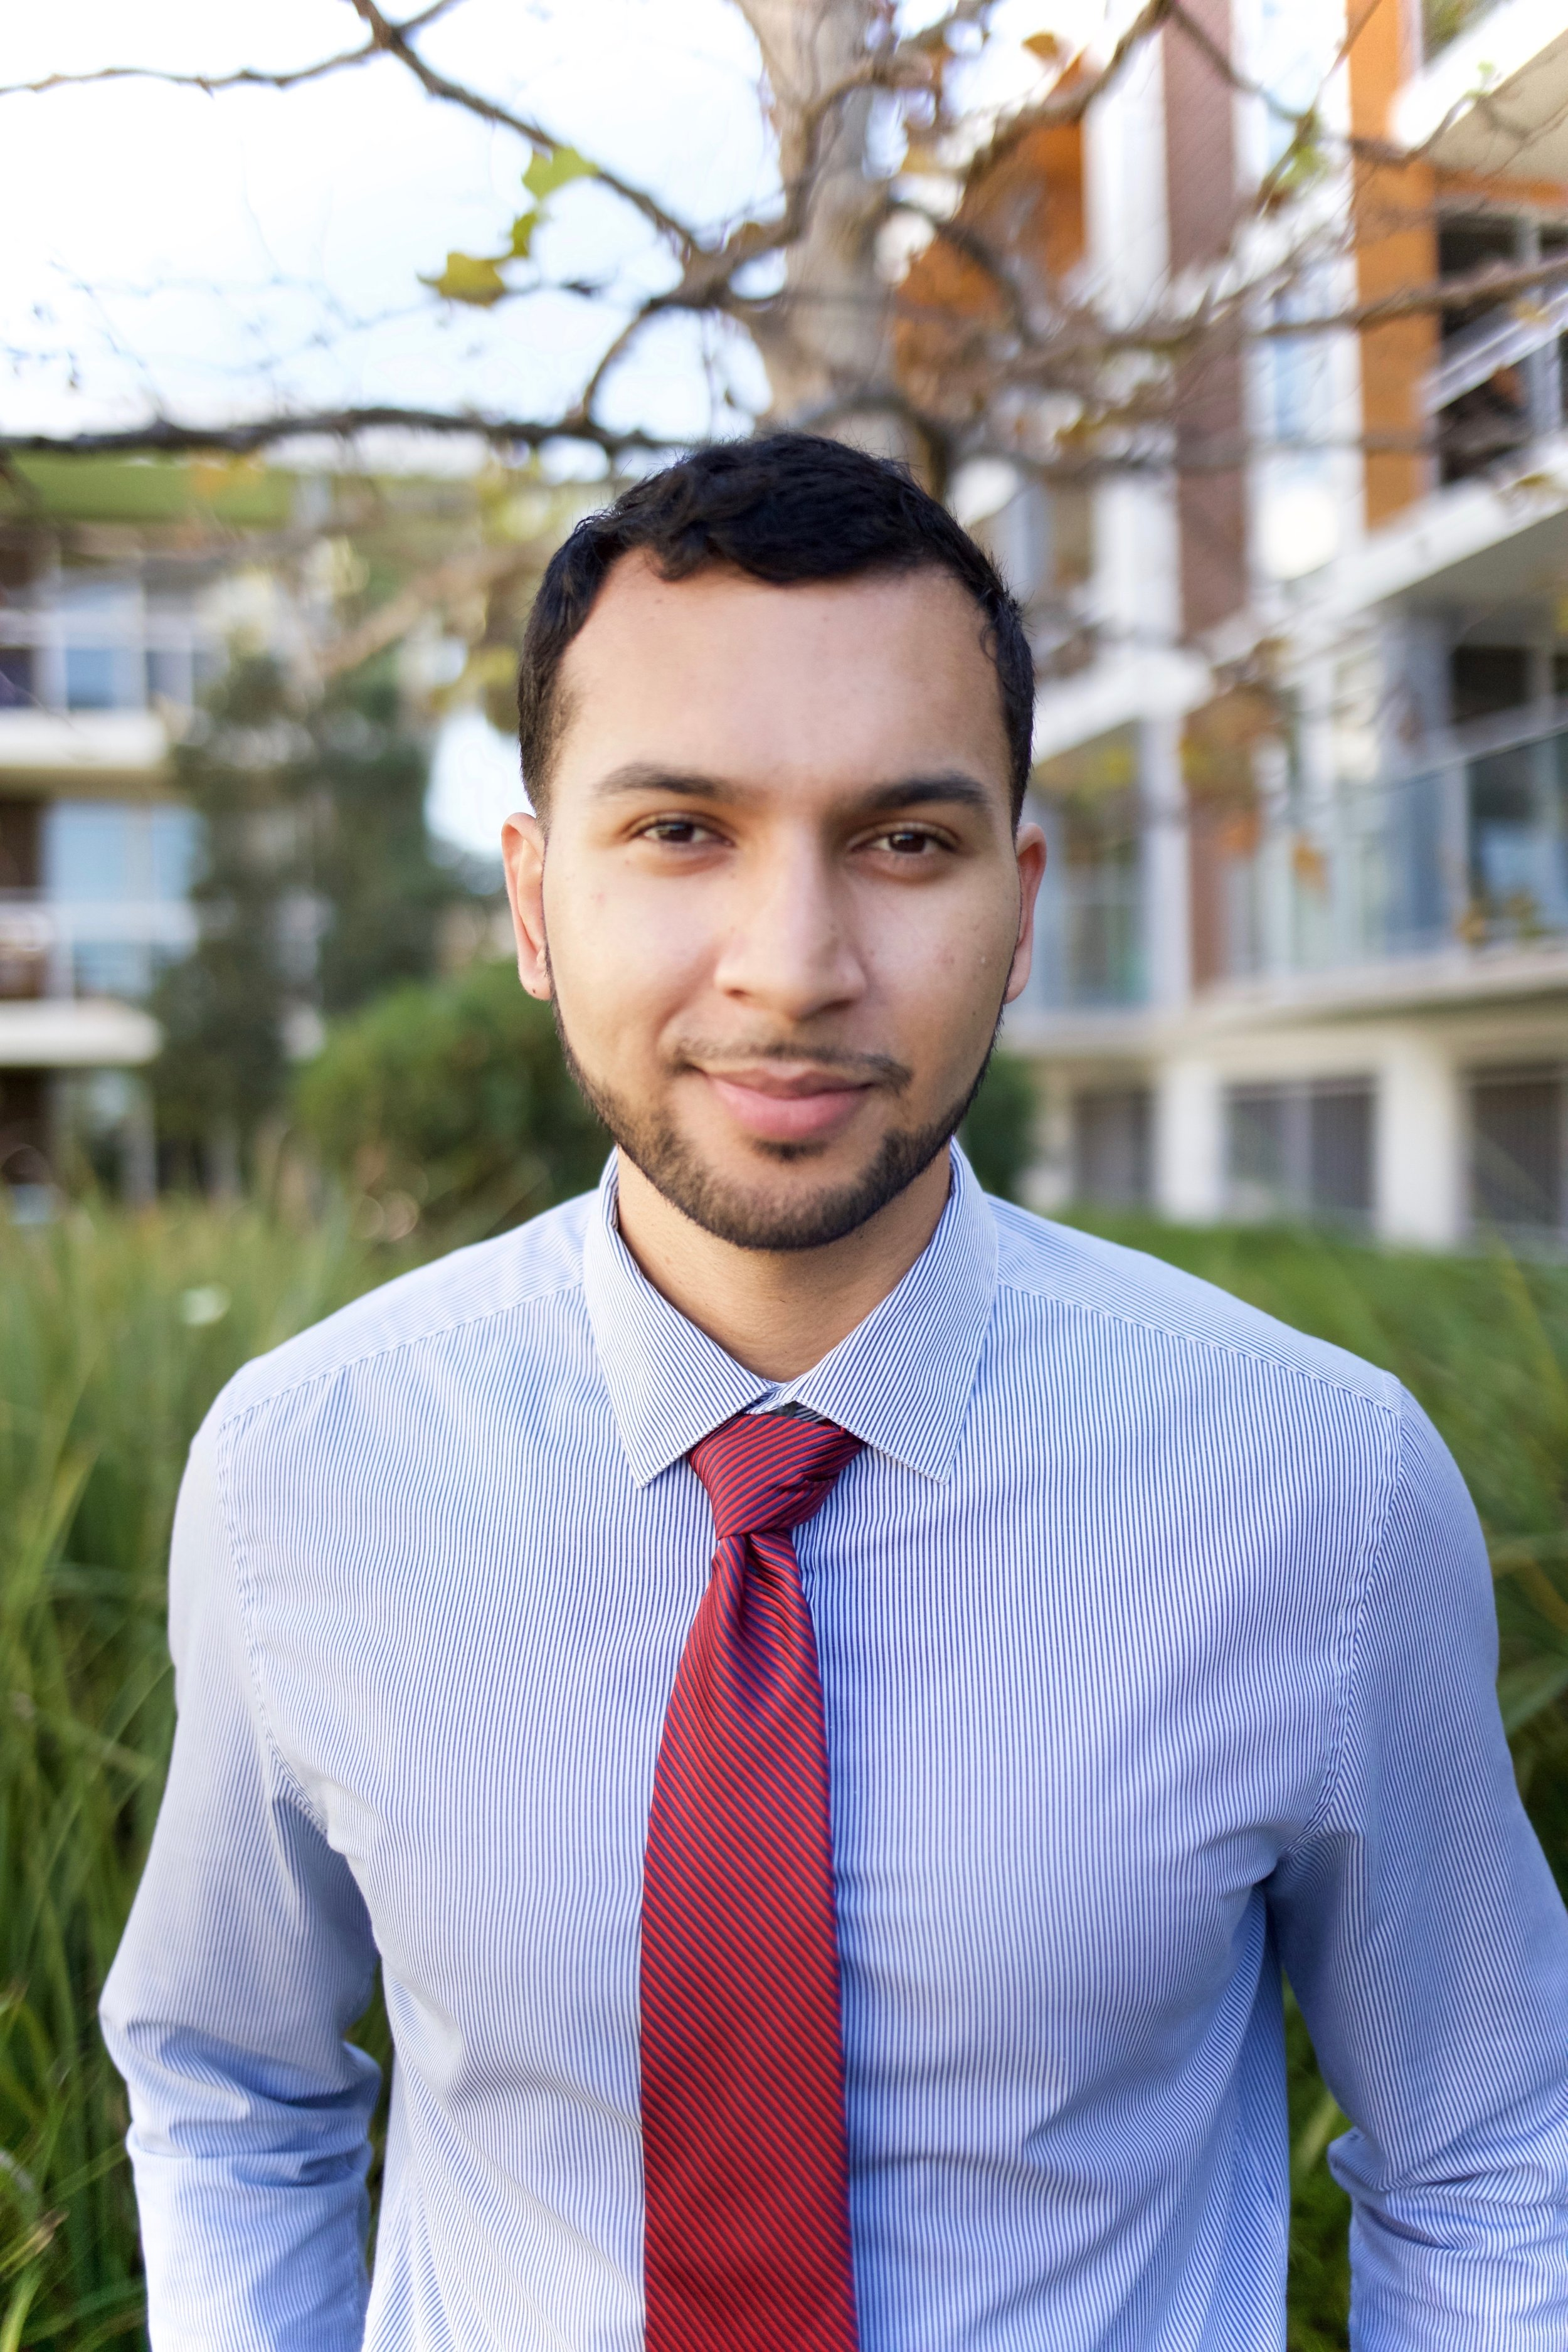 Saul Guevara - is a pursuing his Masters in Communication Management at Annenberg School of Communications. His professional background in communication and public relations in the field of healthcare has developed his passion for public services that have direct impact on social and environmental issues. Consequently, he is interested in learning about the corporate social responsibility initiatives businesses are implementing to achieve a healthy society by addressing global challenges such as economic development, environmental sustainability, and climate change.